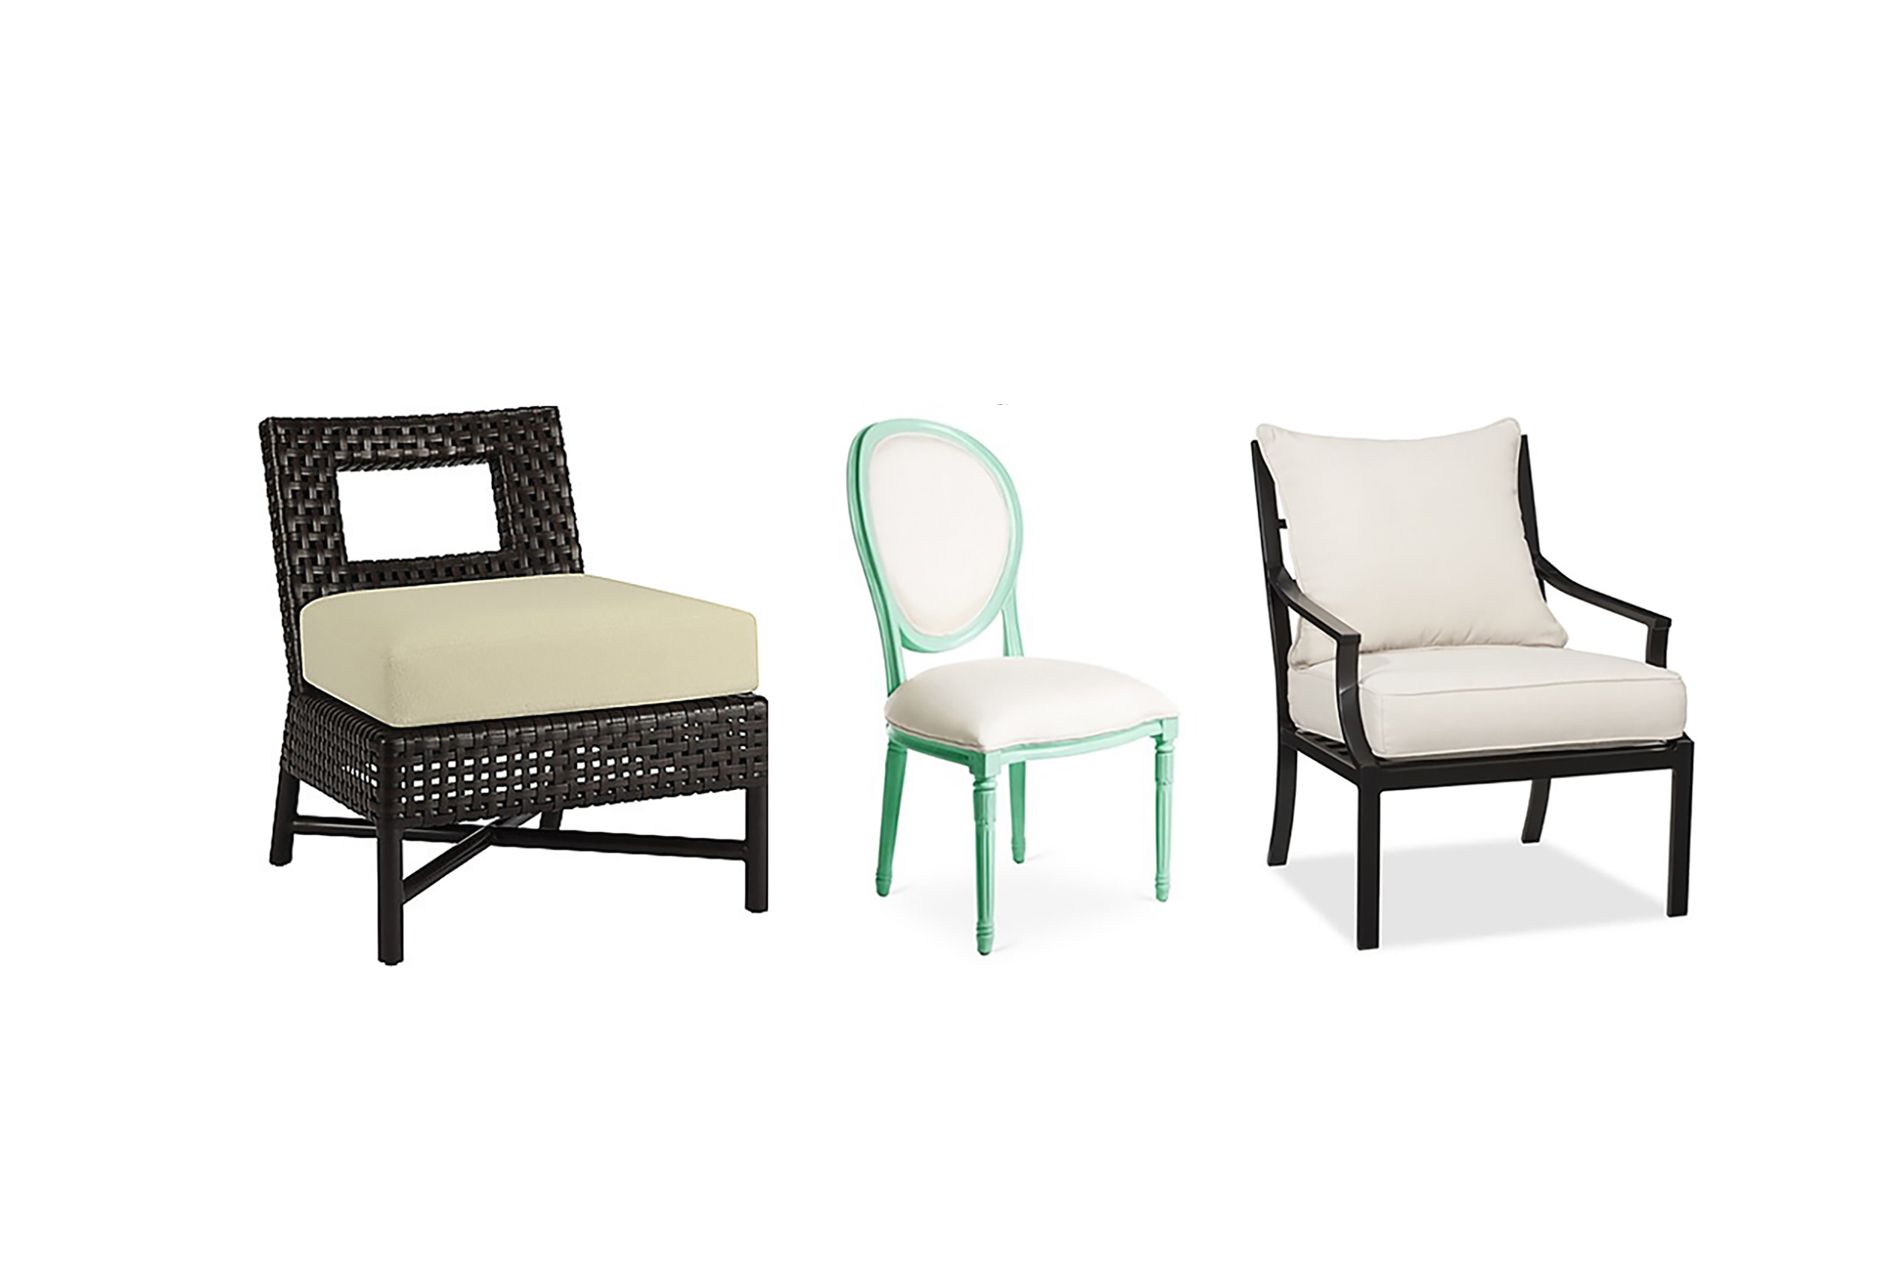 10 Best Garden Chairs Stylish Outdoor Seating for Gardens